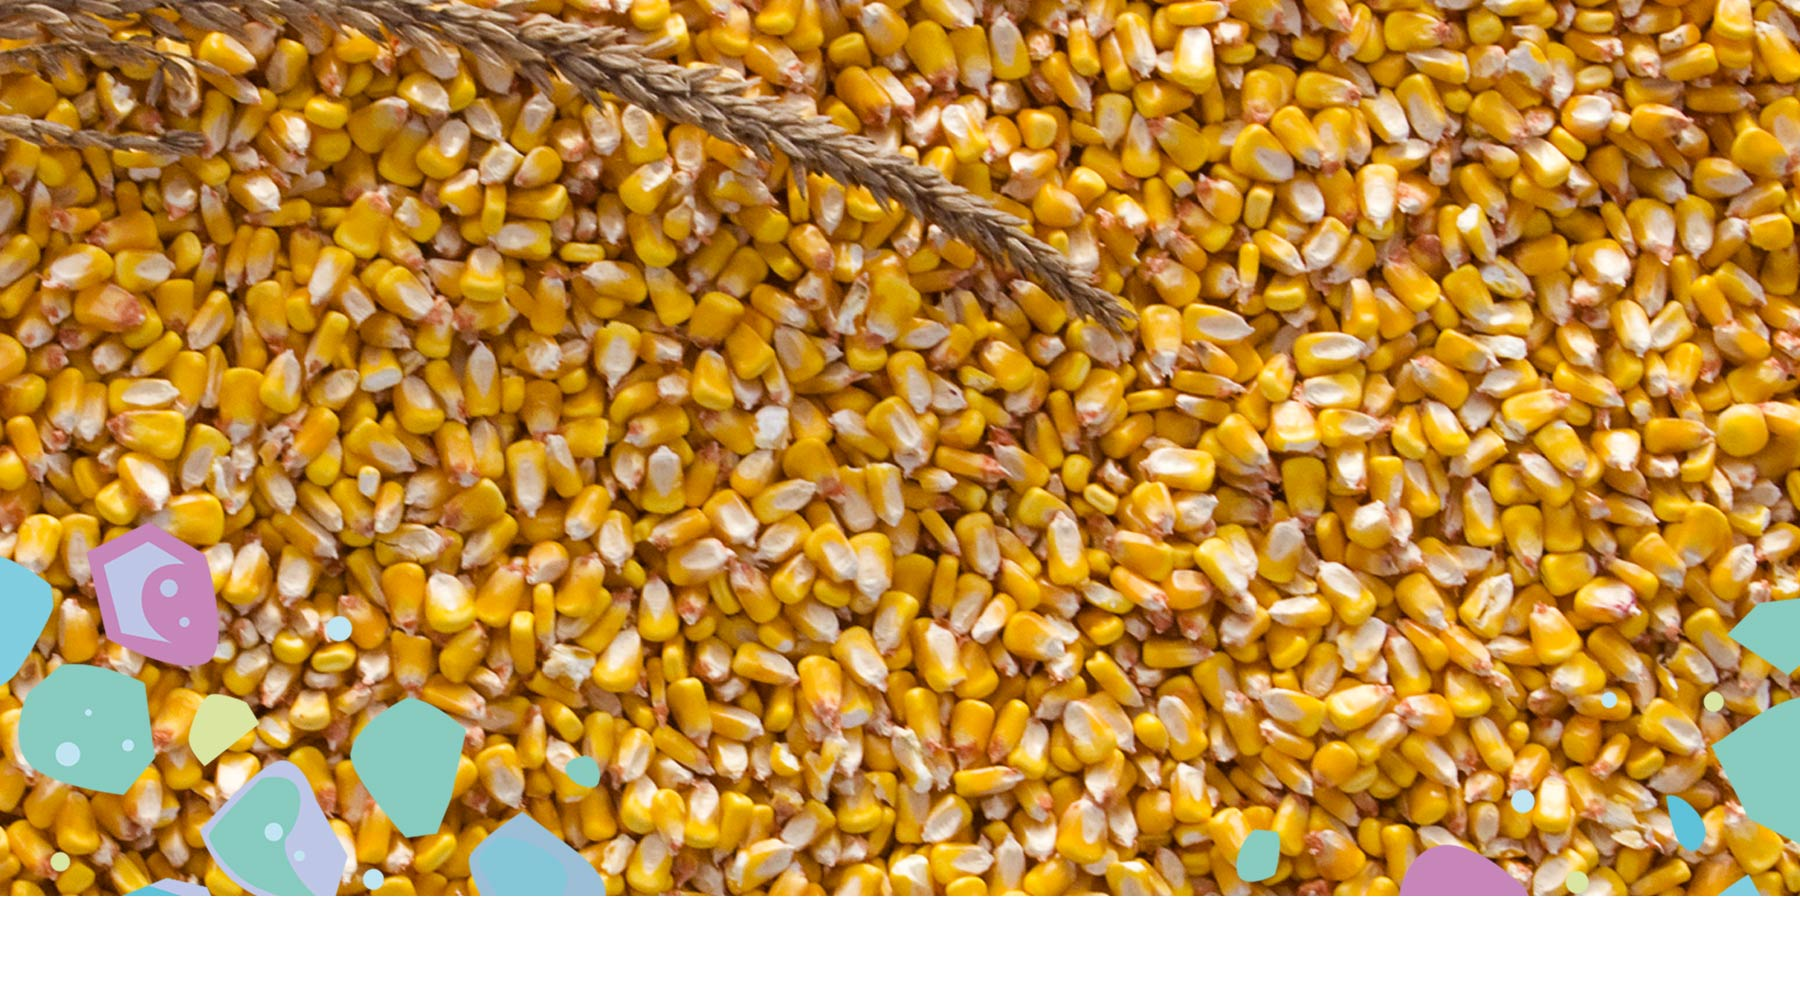 Corn kernels - the main ingredient in PLA - showing natural alternatives to prevent microplastics and plastic pollution